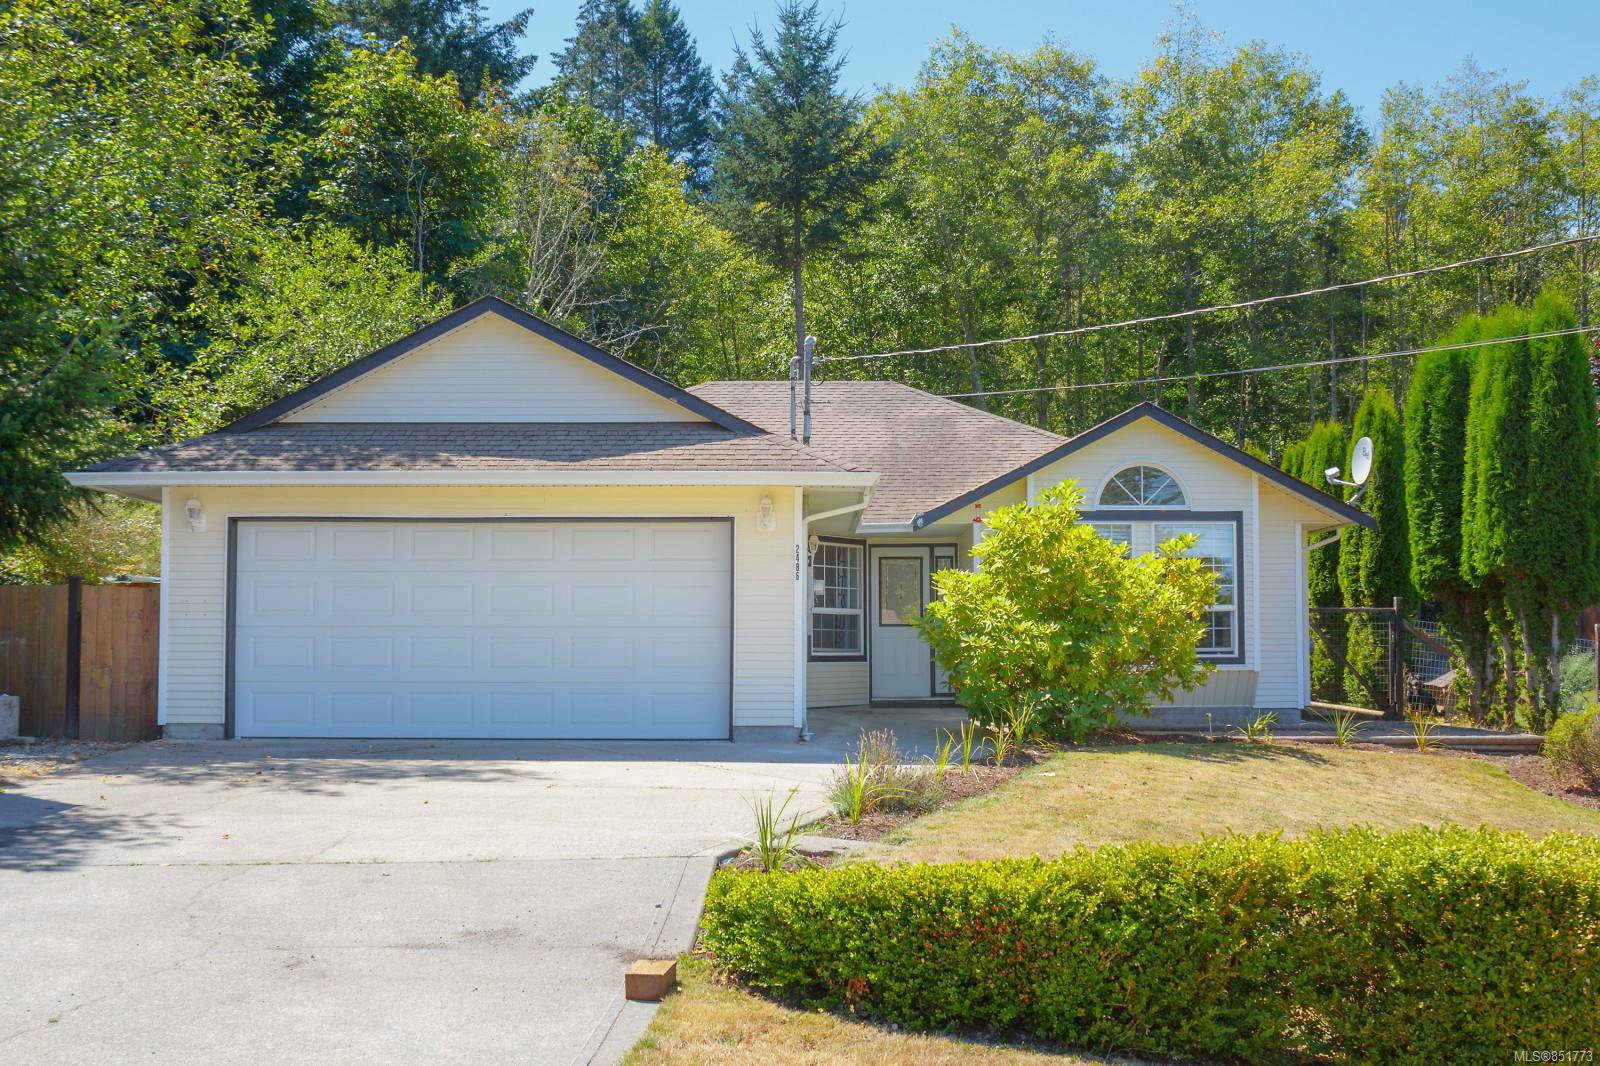 Main Photo: 2486 Witter Pl in : Sk Broomhill House for sale (Sooke)  : MLS®# 851773